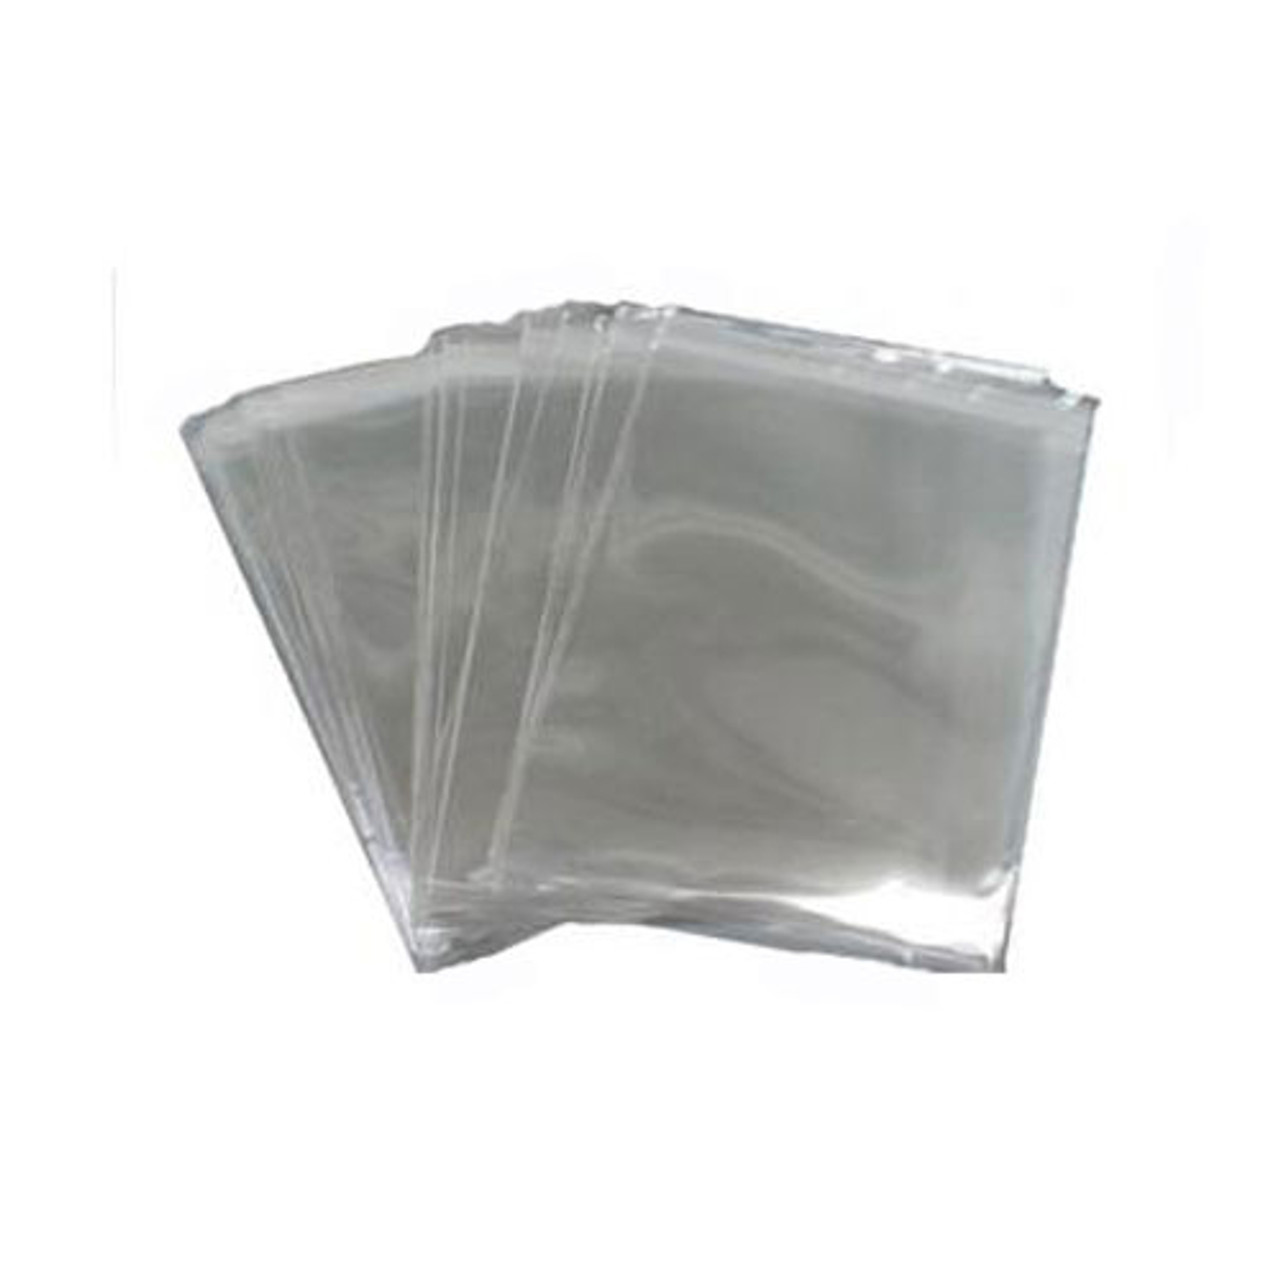 "Clear Resealable Bags 140mm x 200mm (fits 5""x7"" Card & A7 Envelope) - Pk of 100"